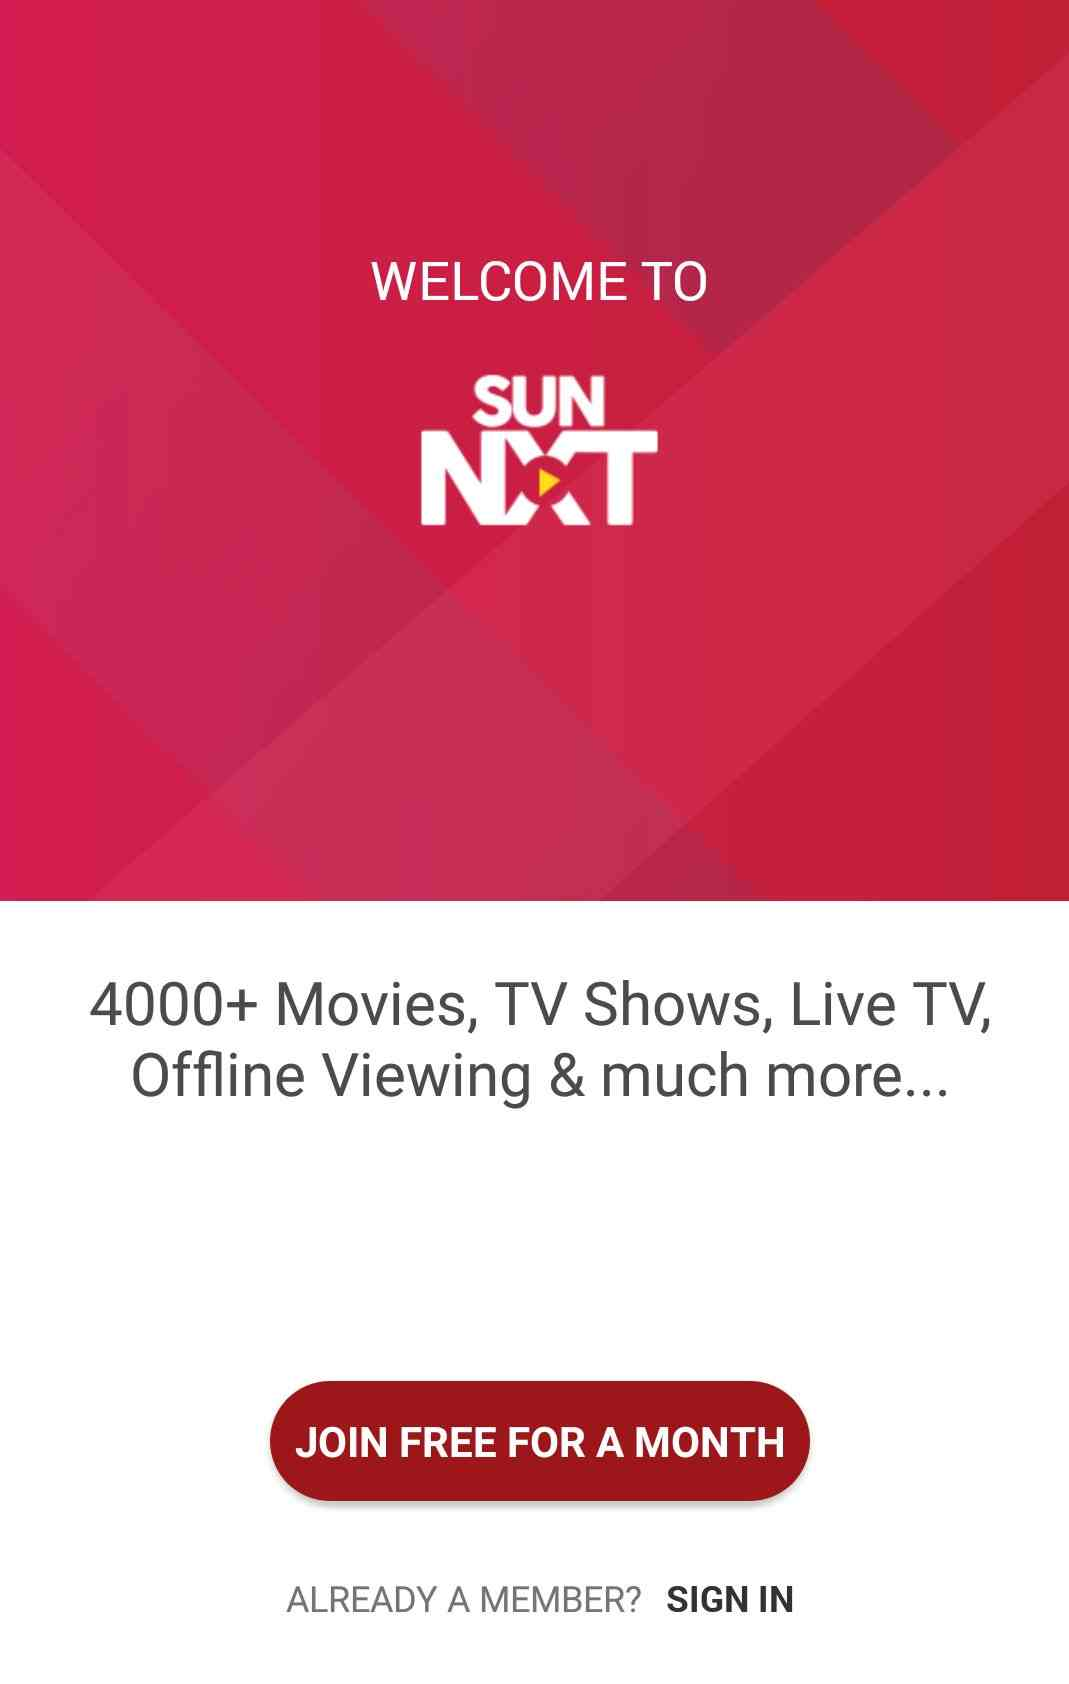 Sun NXT App Download And Installation - Watch Surya TV Shows